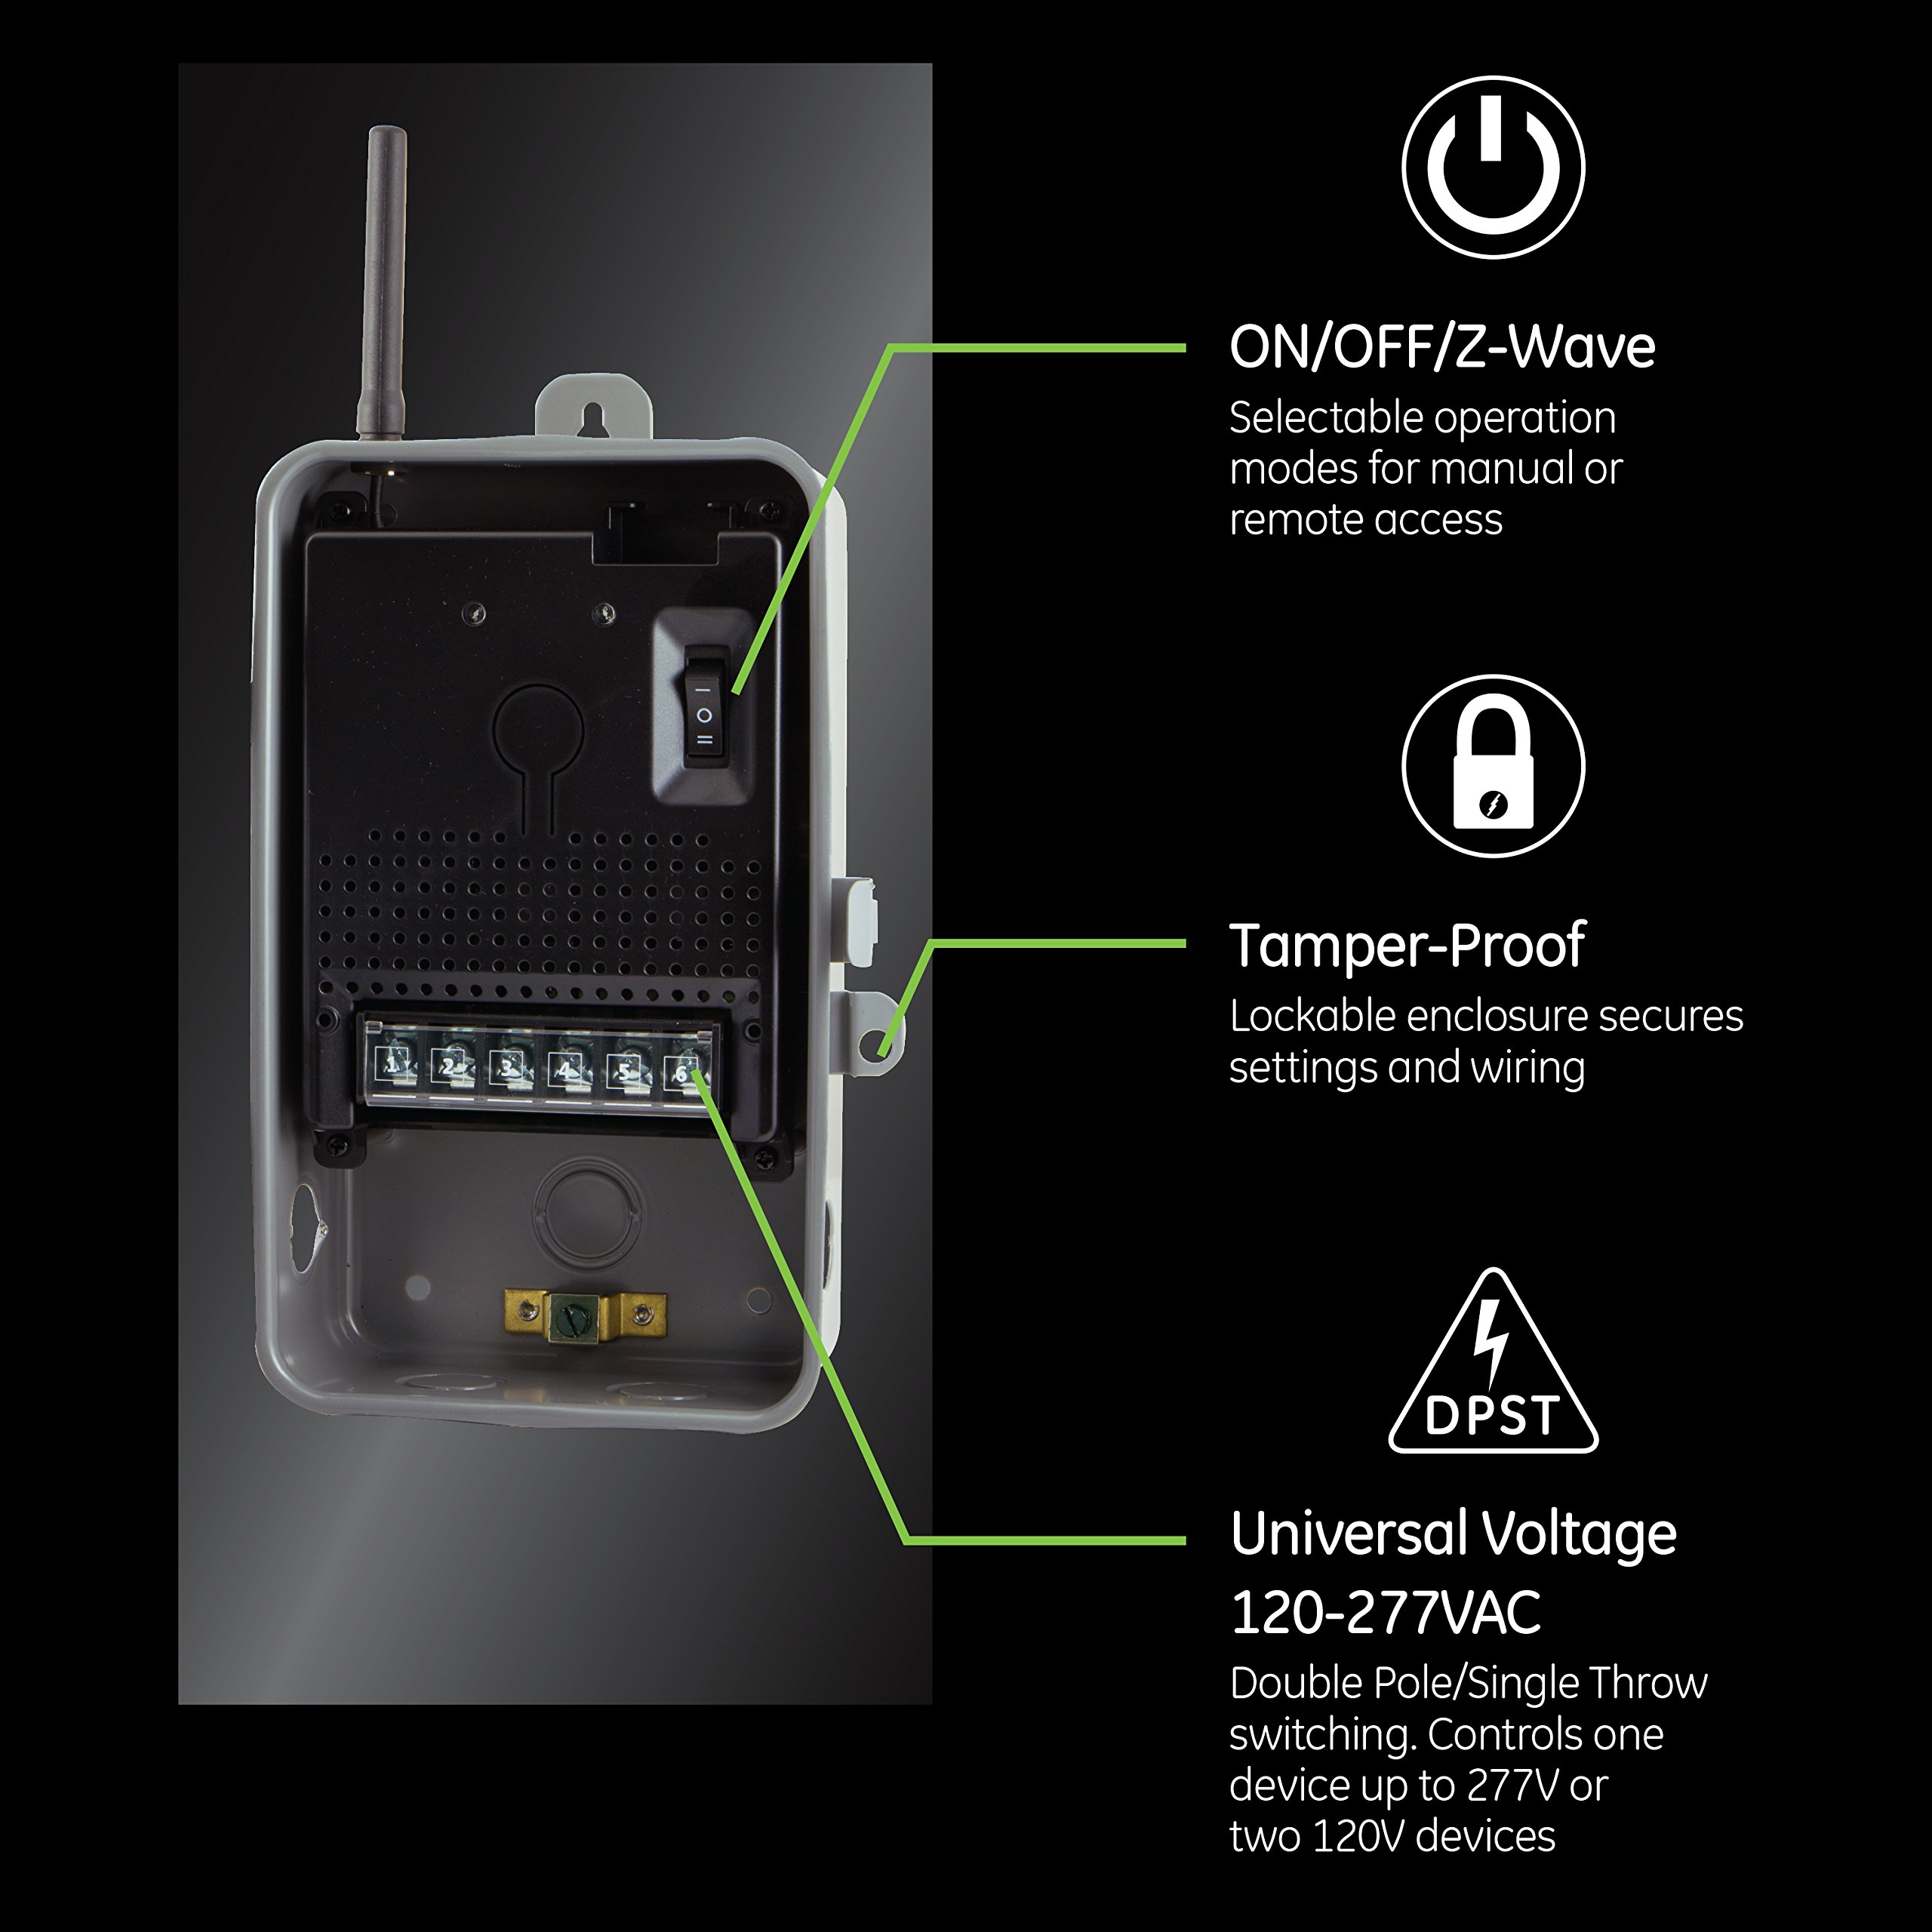 Ge Zwave Plus Direct Wire 40 Smart Switch Indooroutdoor 120. Ge Zwave Plus Direct Wire 40 Smart Switch Indooroutdoor 120277v Lighting Appliance Control Repeaterrange Extender Hub Requiredworks With. Smart. Ge Smart Switch Wiring At Scoala.co